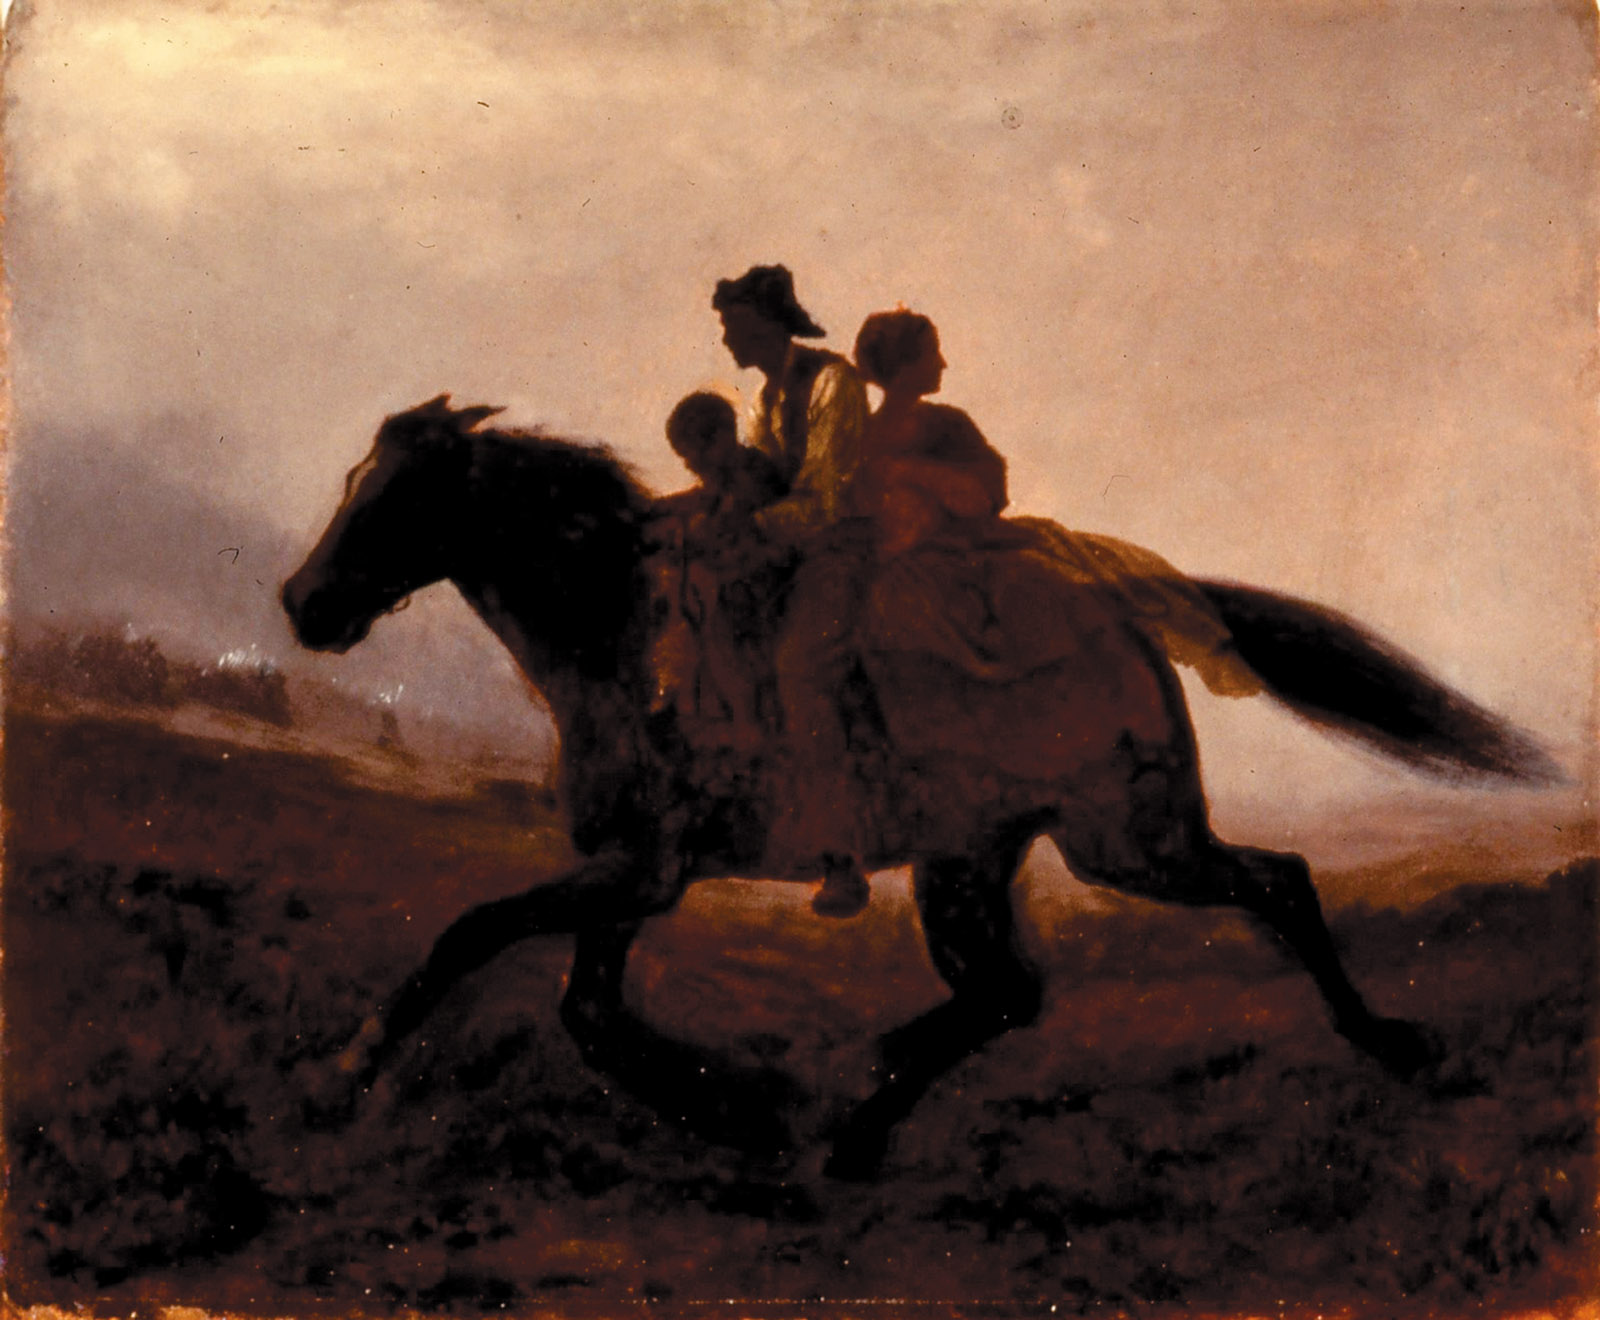 A Ride for Liberty—The Fugitive Slaves, circa 1862; a painting by Eastman Johnson